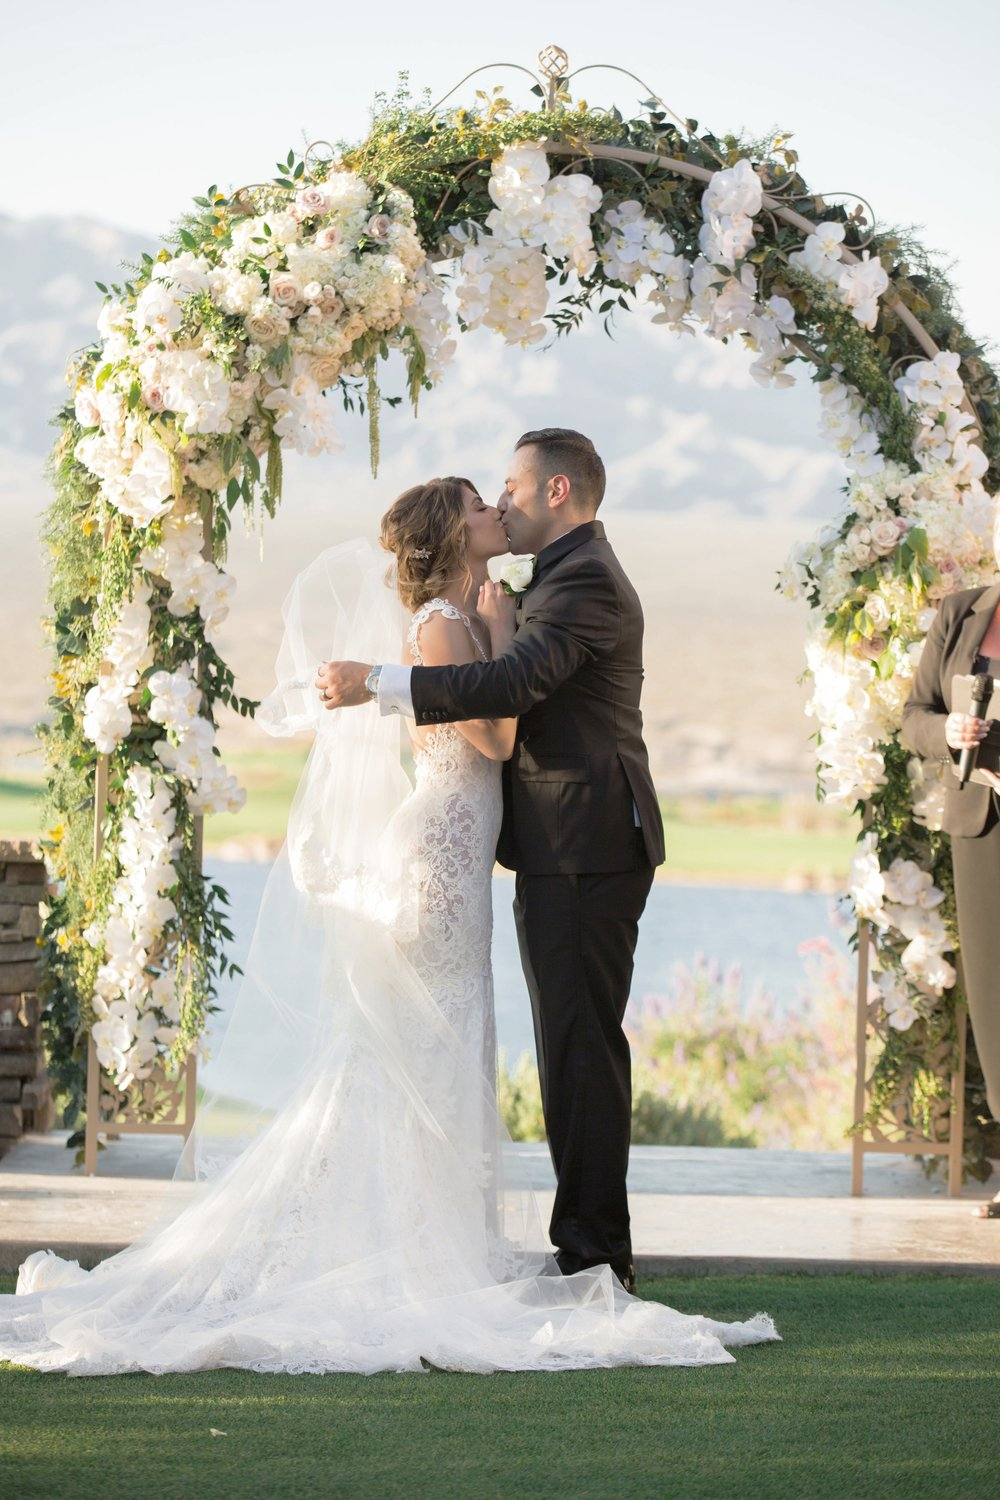 First kiss under a white and green arch  |   Luxury Destination Wedding Planning and Event Design by  Andrea Eppolito Events  · Photos by  Stephen Salazar